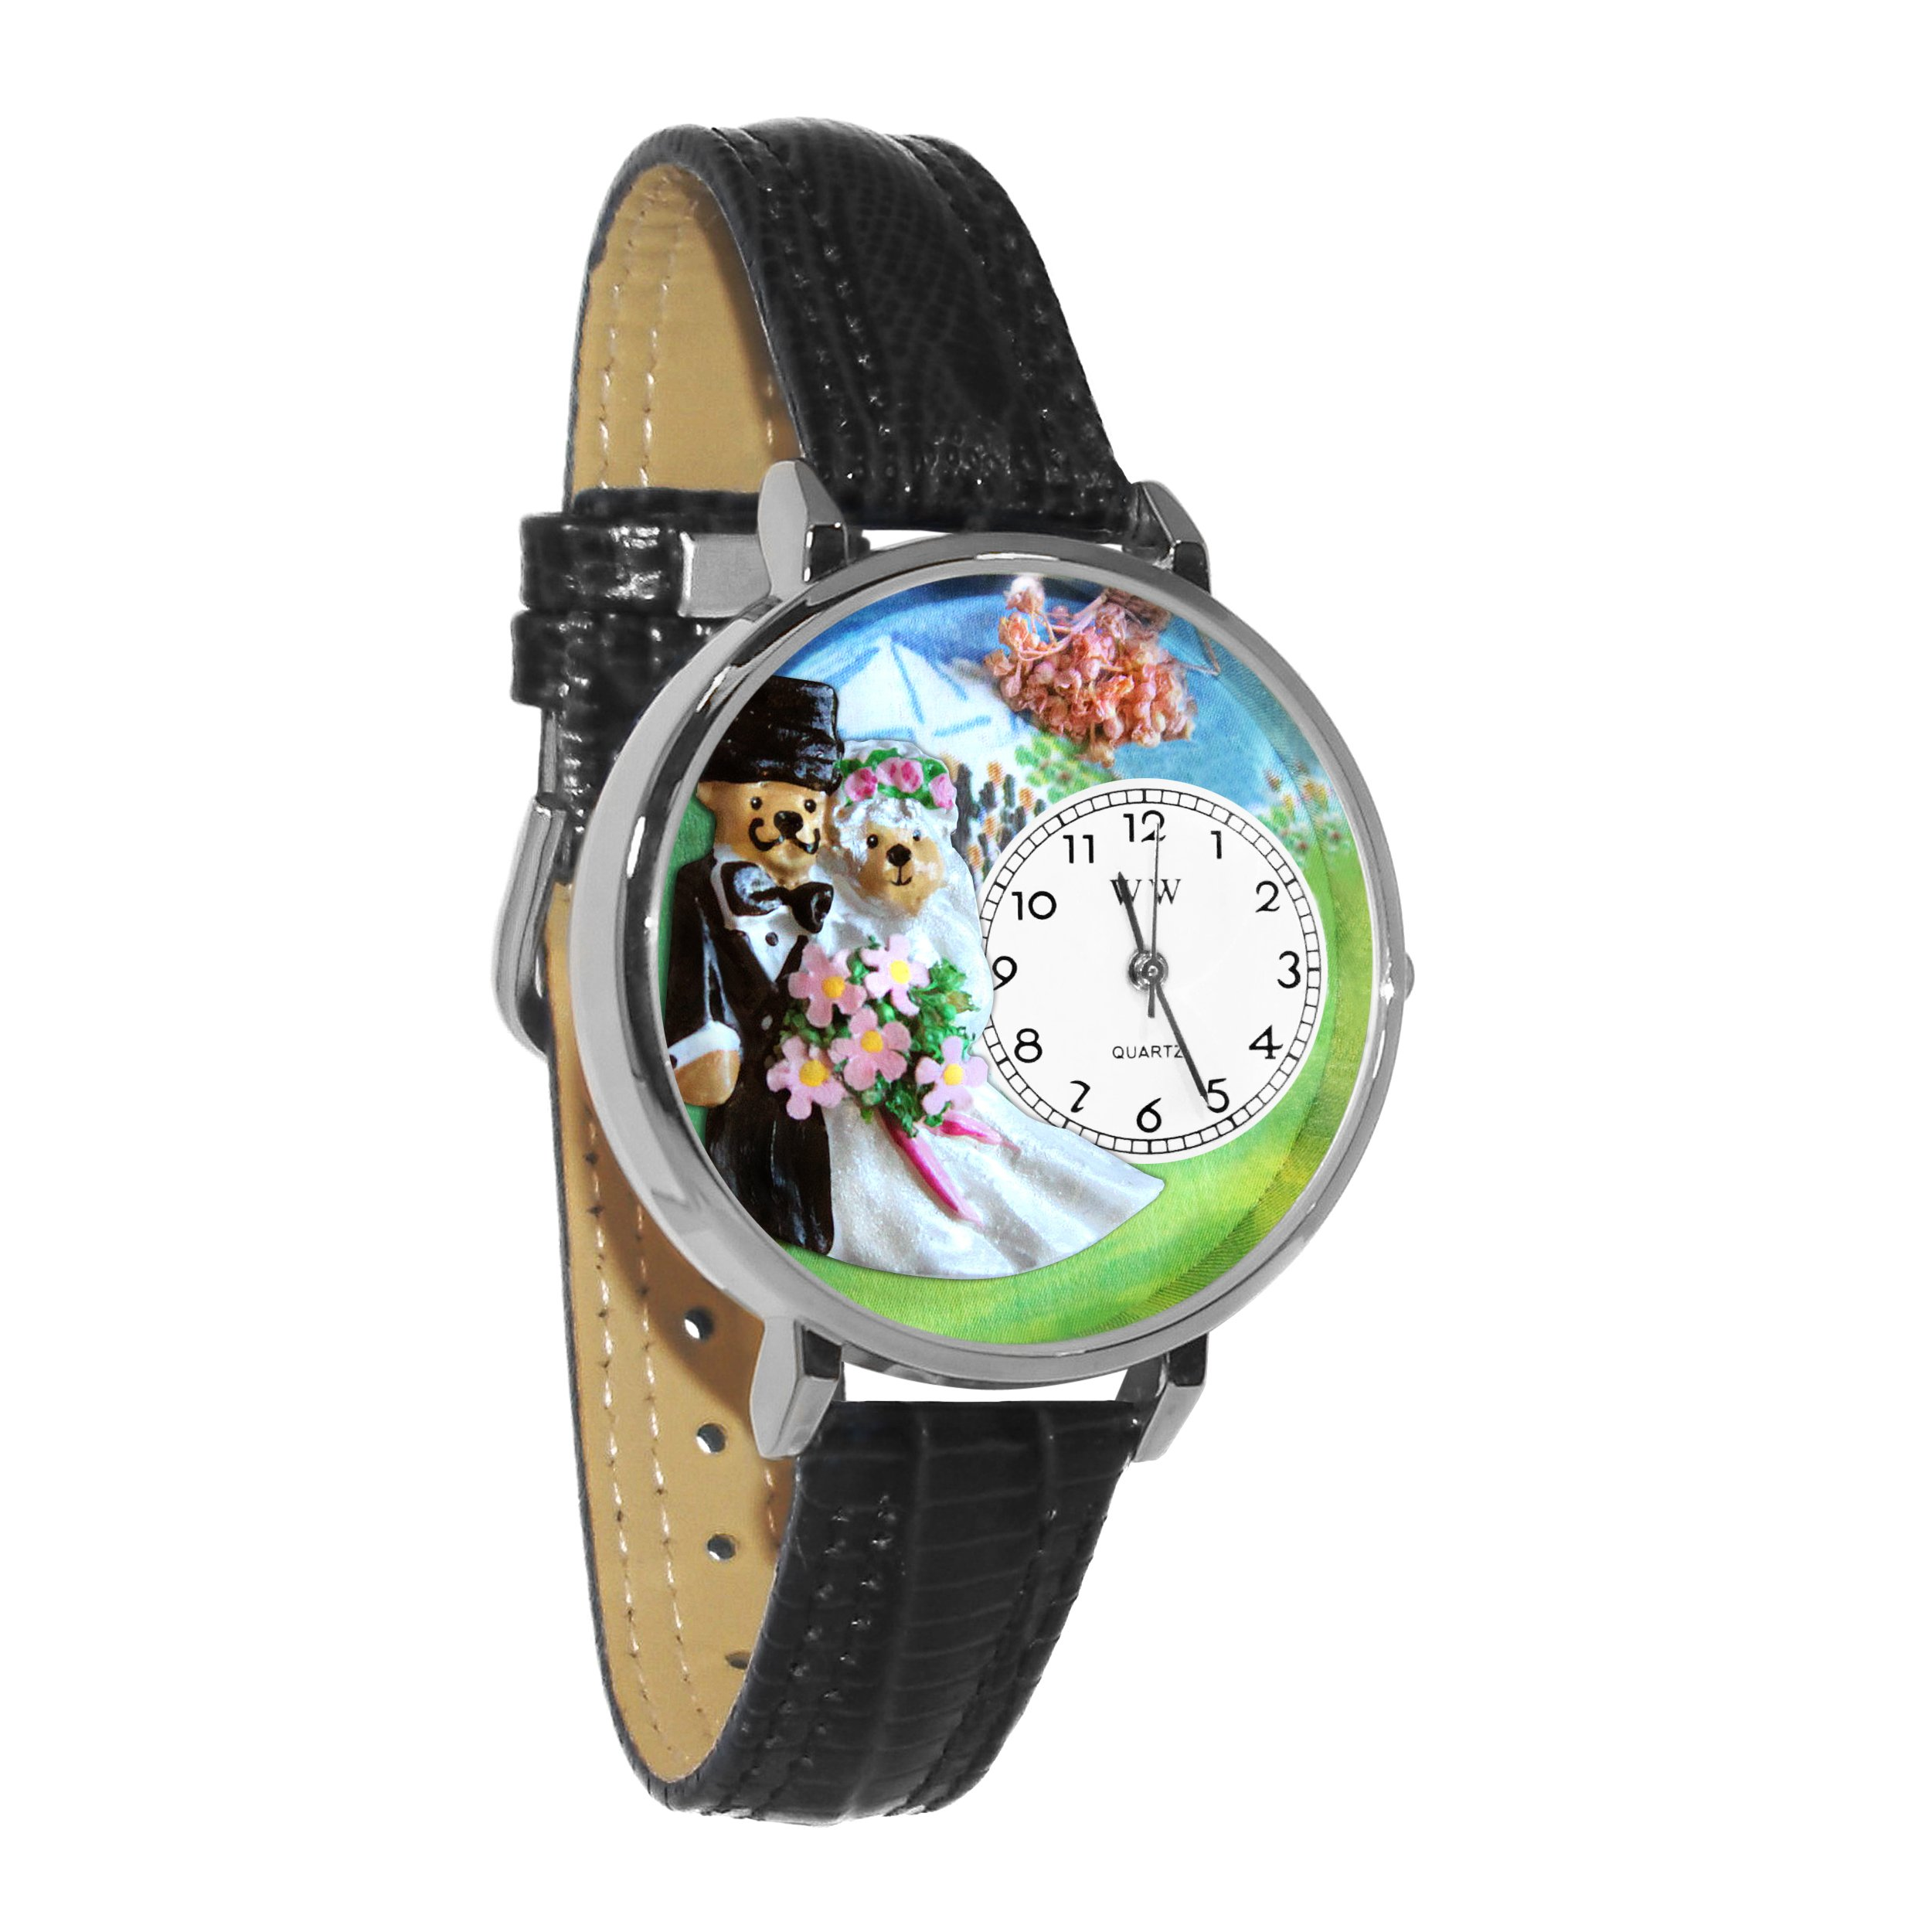 Whimsical Watches Unisex U1340002 Teddy Bear Wedding White Leather Watch by Whimsical Watches (Image #1)